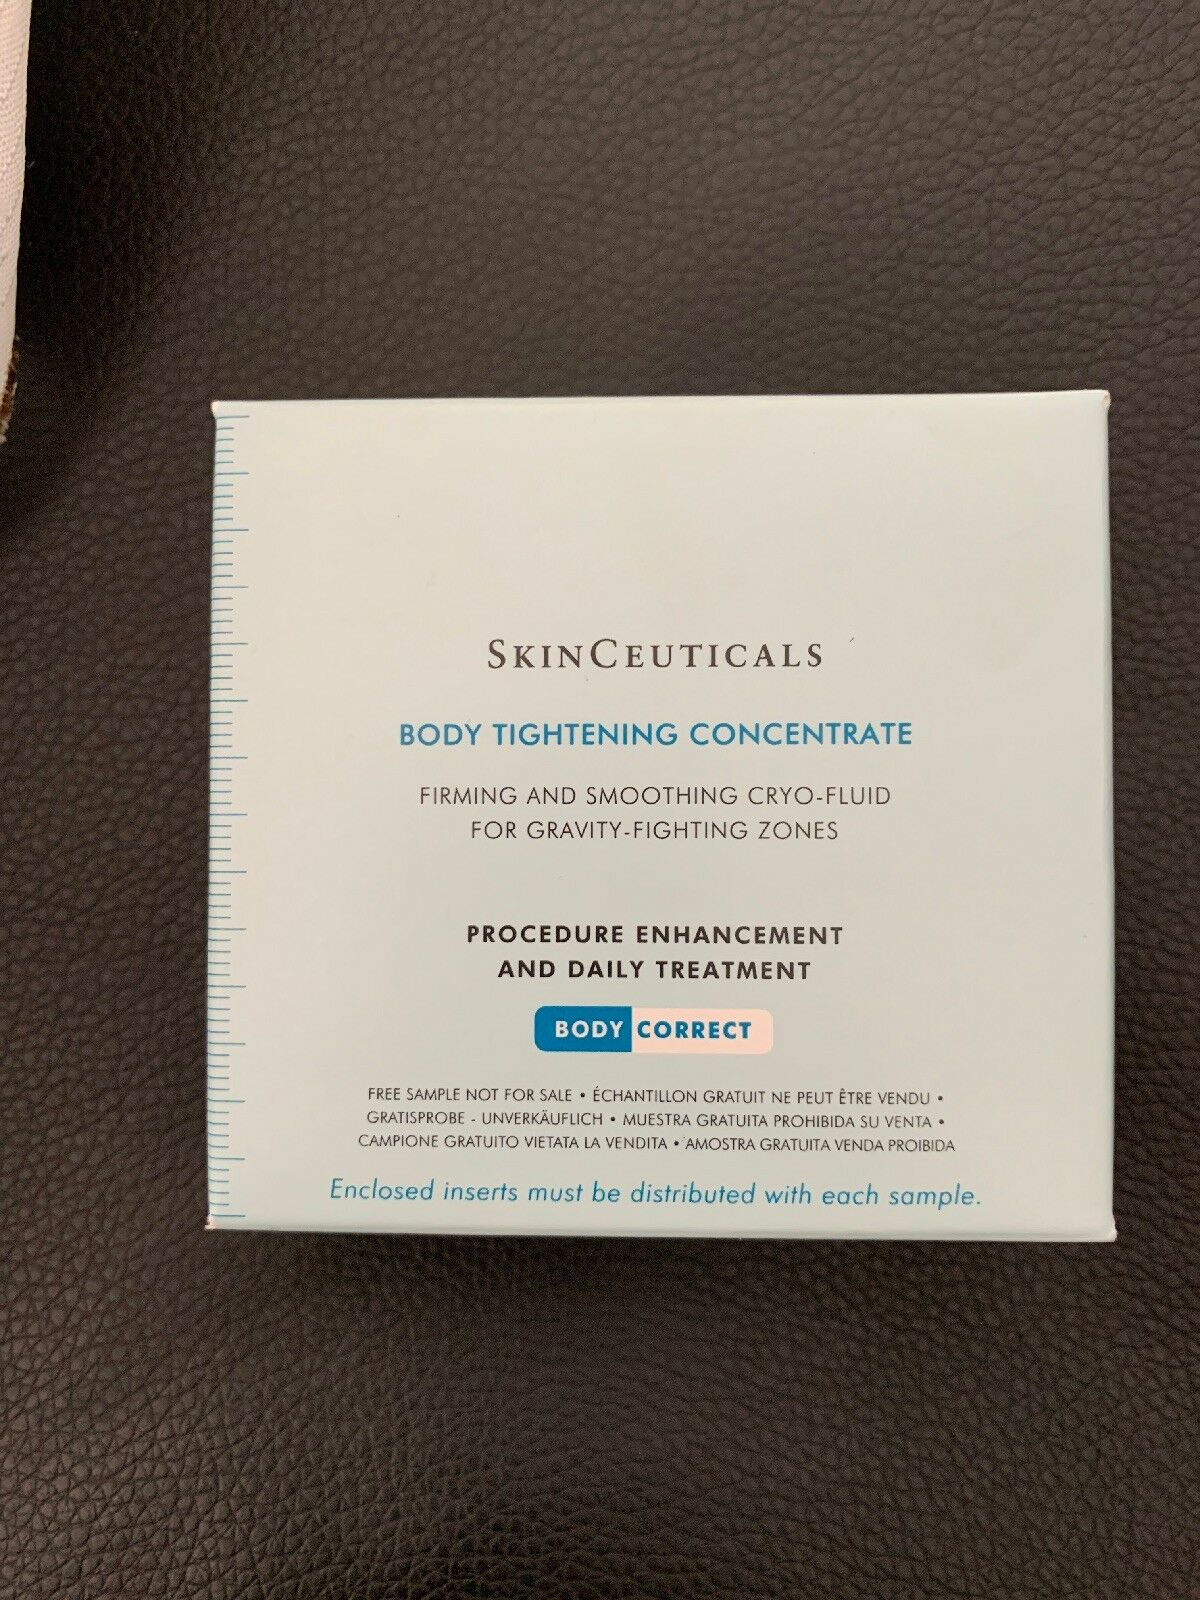 6 Samples Skinceuticals Body Tightening Concentrate Free Shipping